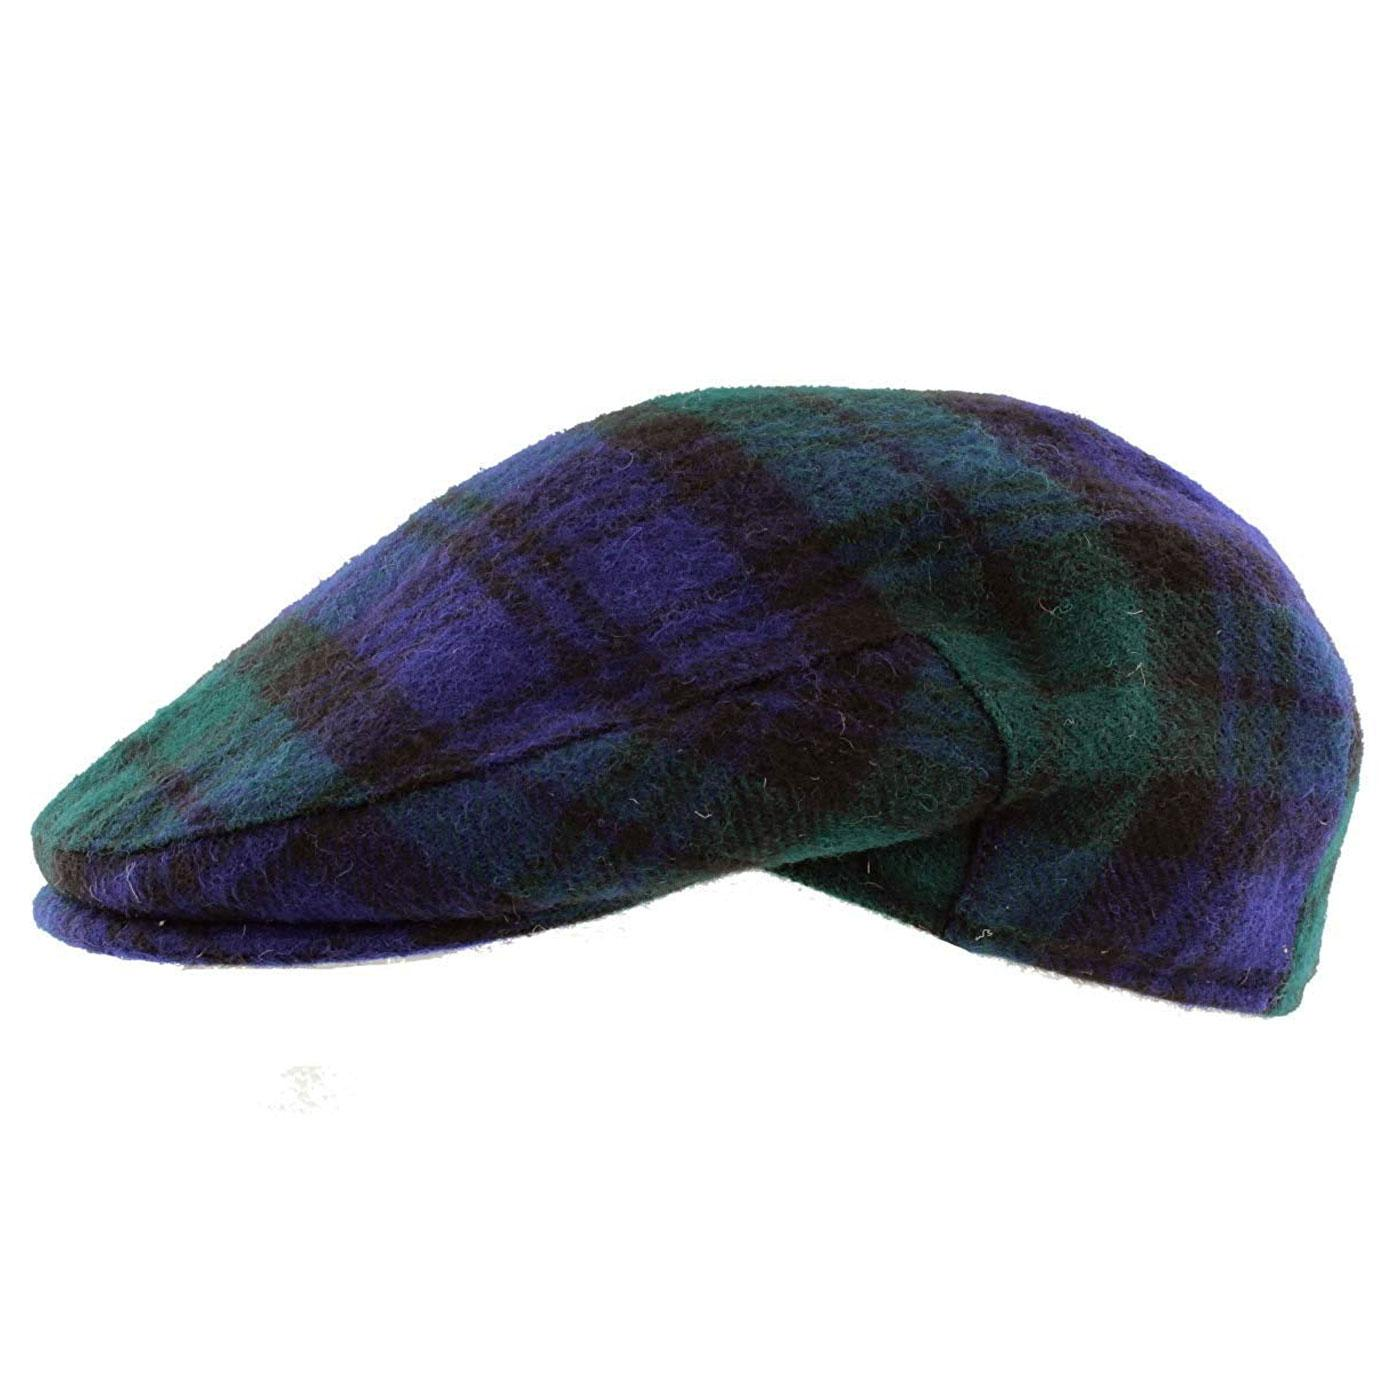 FAILSWORTH Retro Blackwatch Tartan Flat Cap